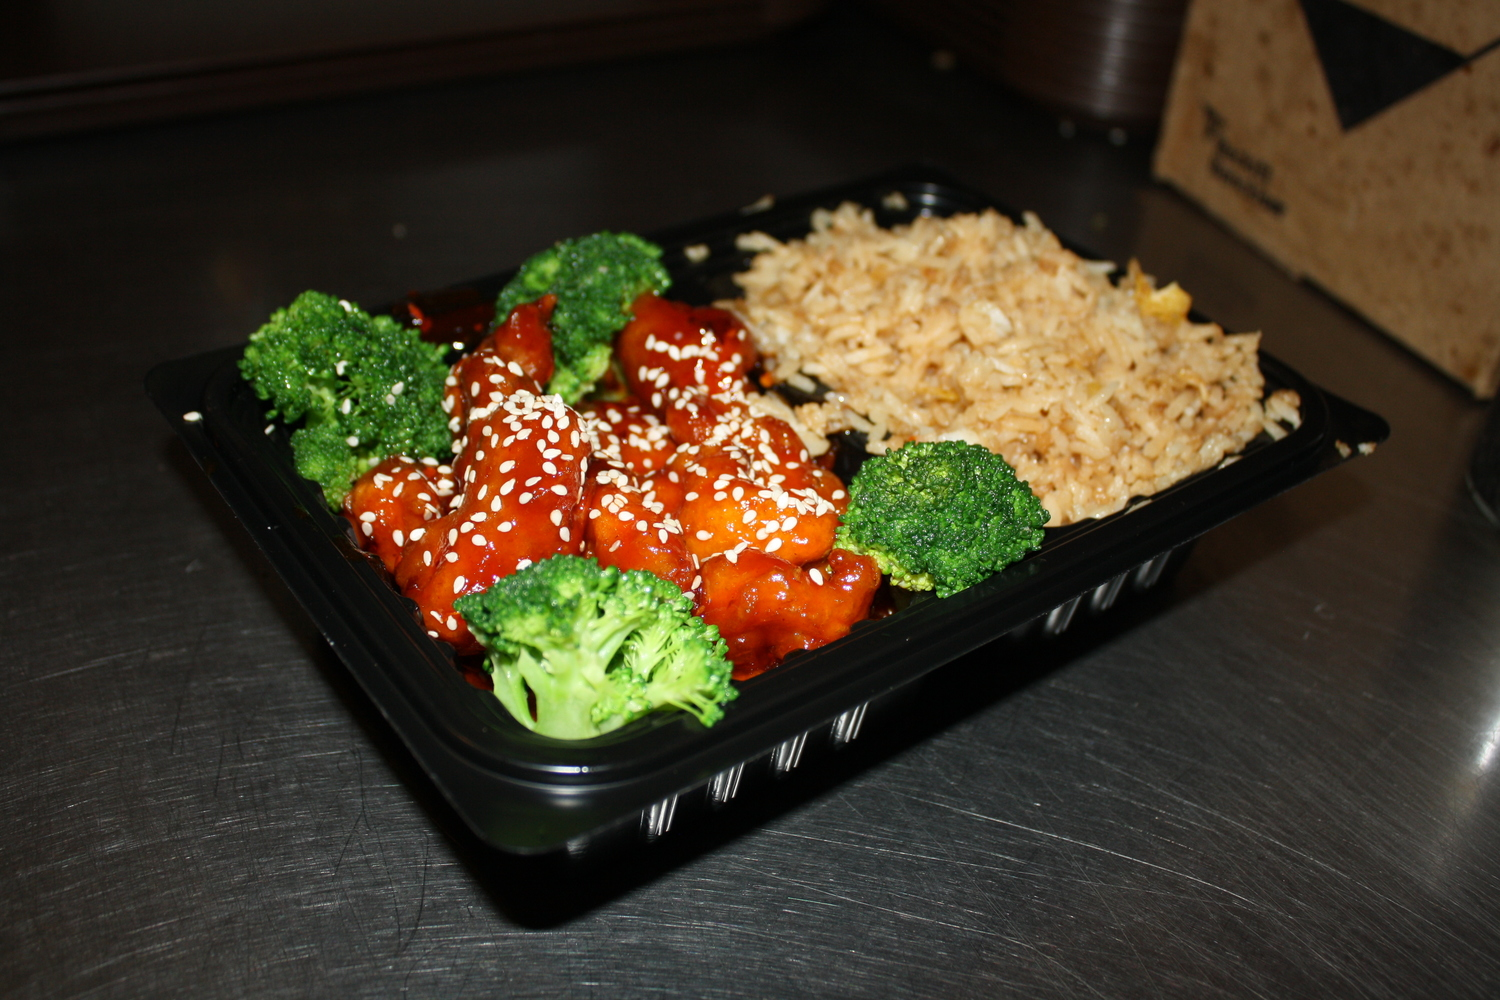 Sesame Chicken Lunch Special